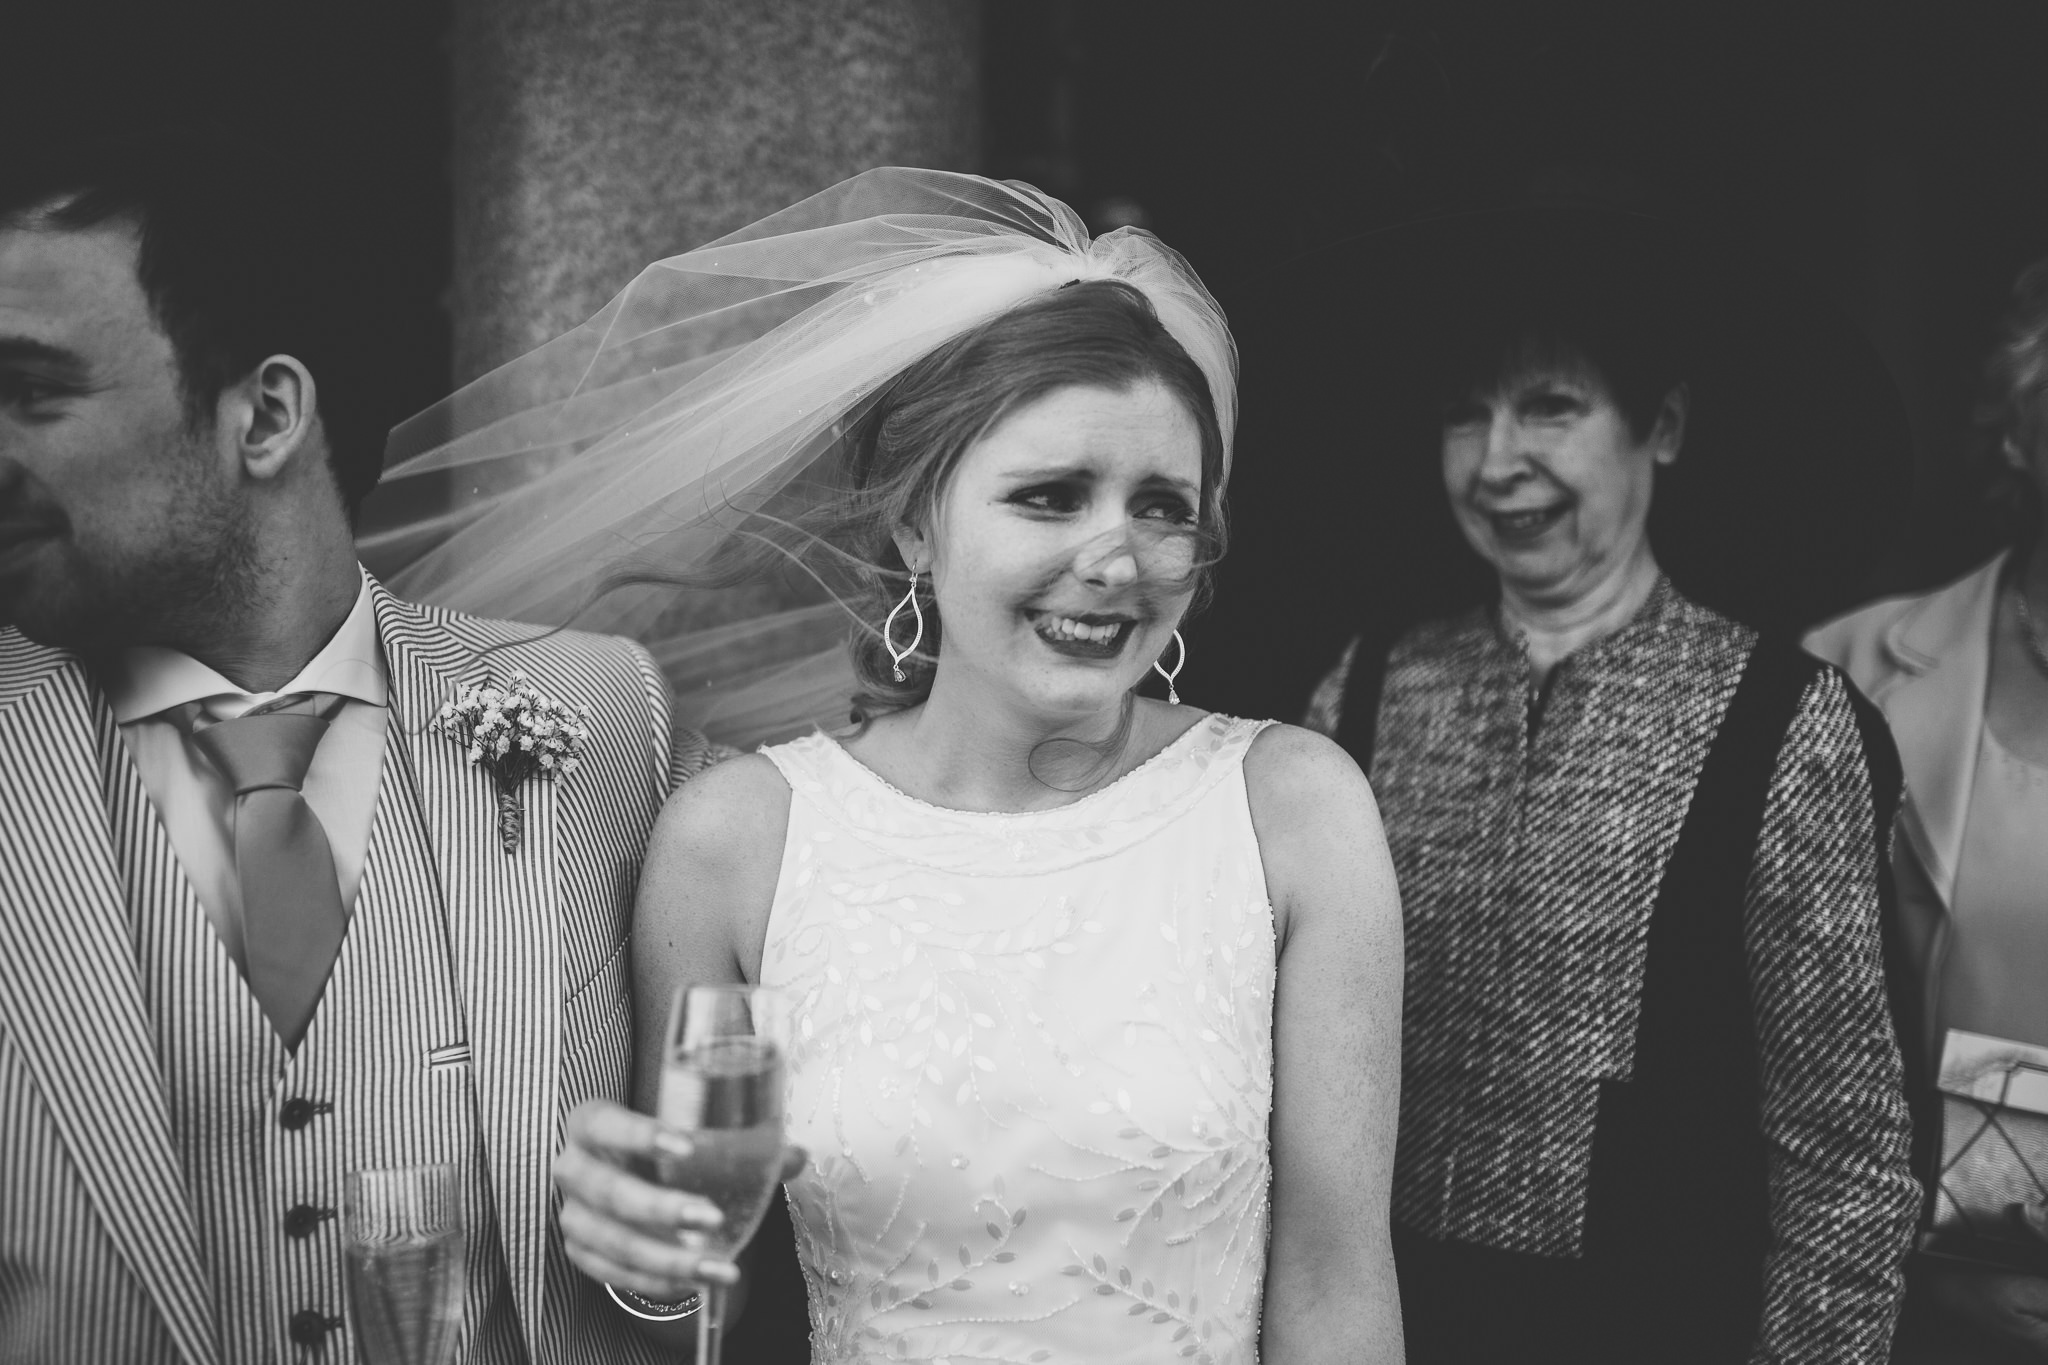 Chester-Cheshire-Creative-natural-wedding-photography-90047